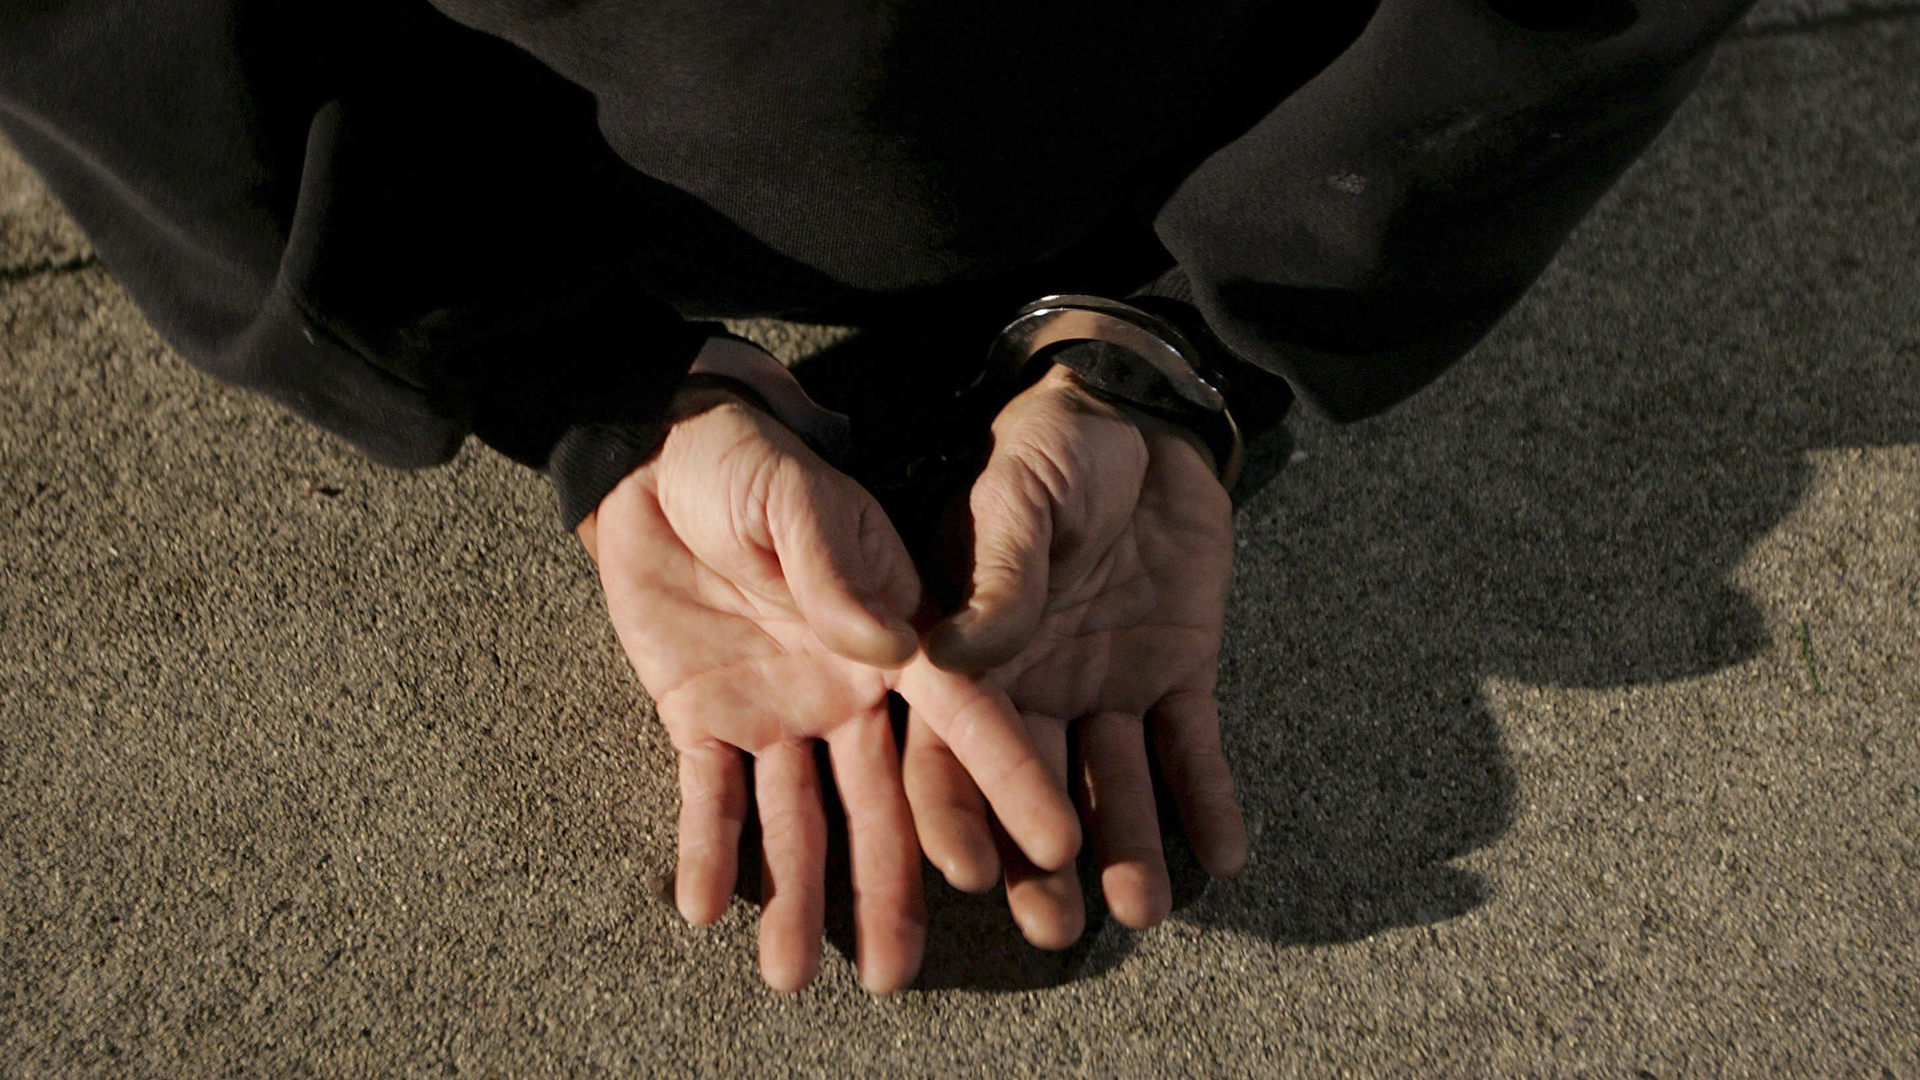 filephoto-handcuffs